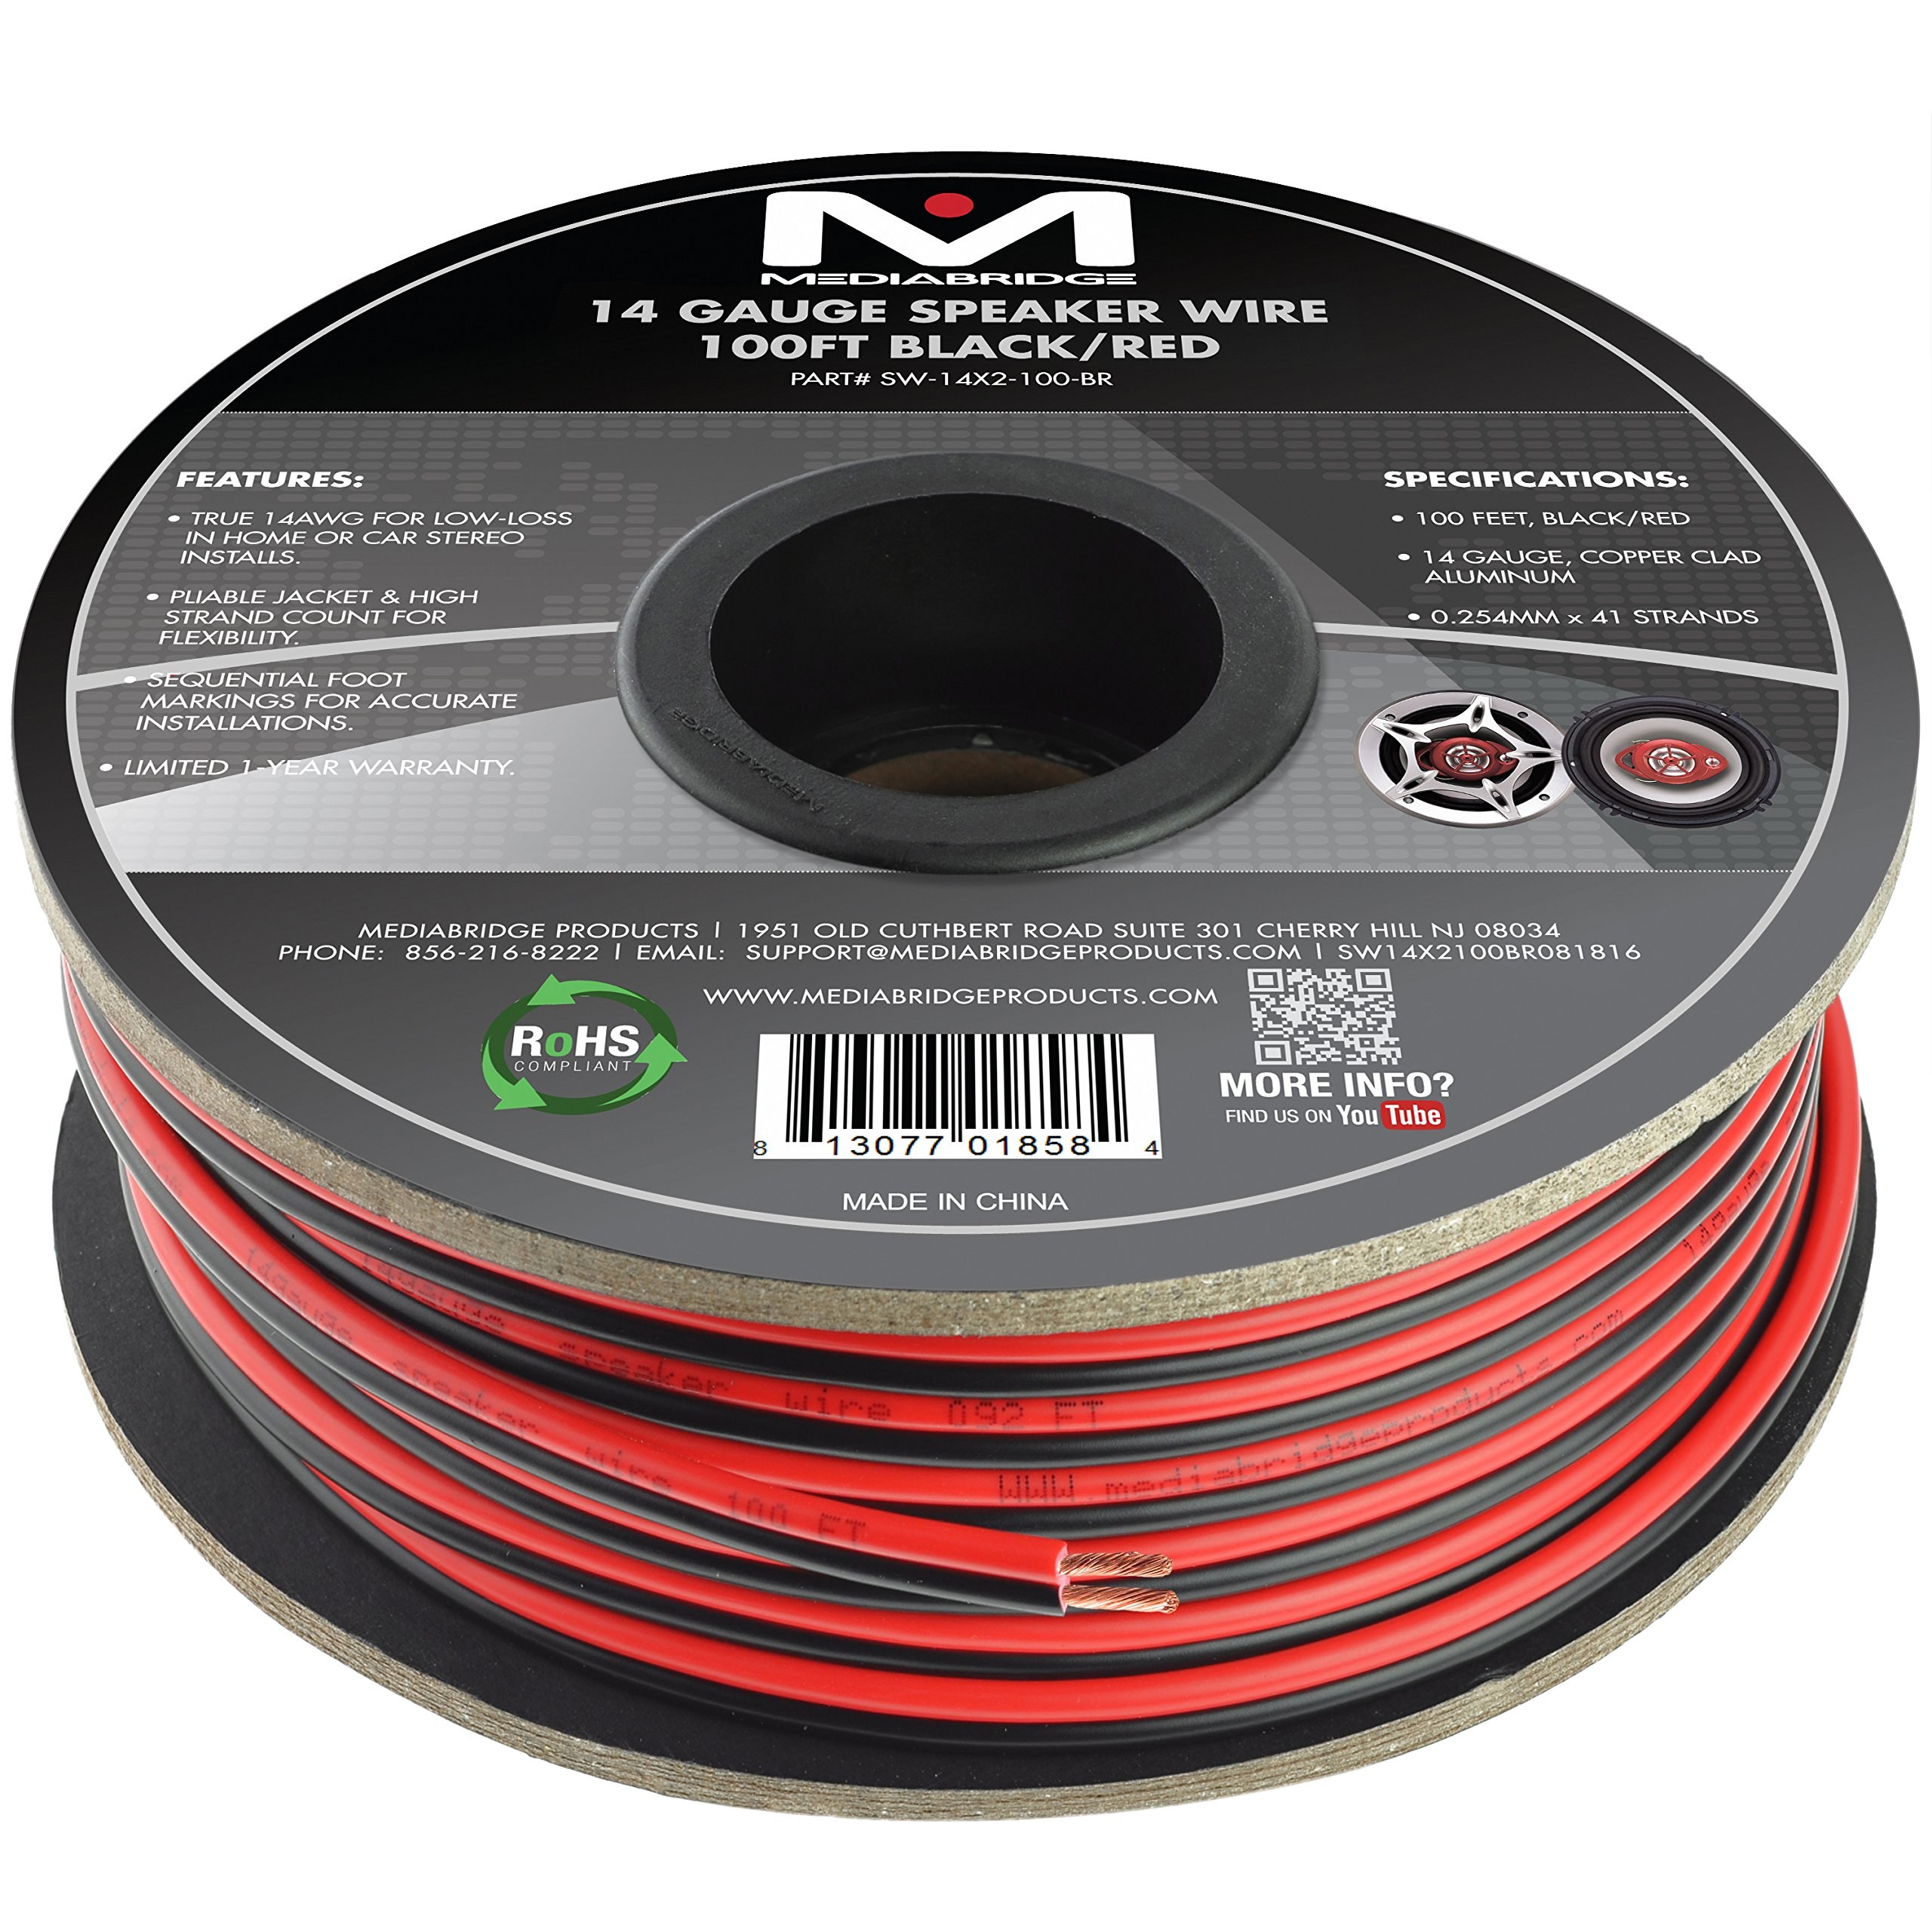 Mediabridge 14AWG 2-Conductor Speaker Wire (100 FT, Black/Red) - for Home Or Car - Copper Clad Aluminum (SW-14X2-100-BR)